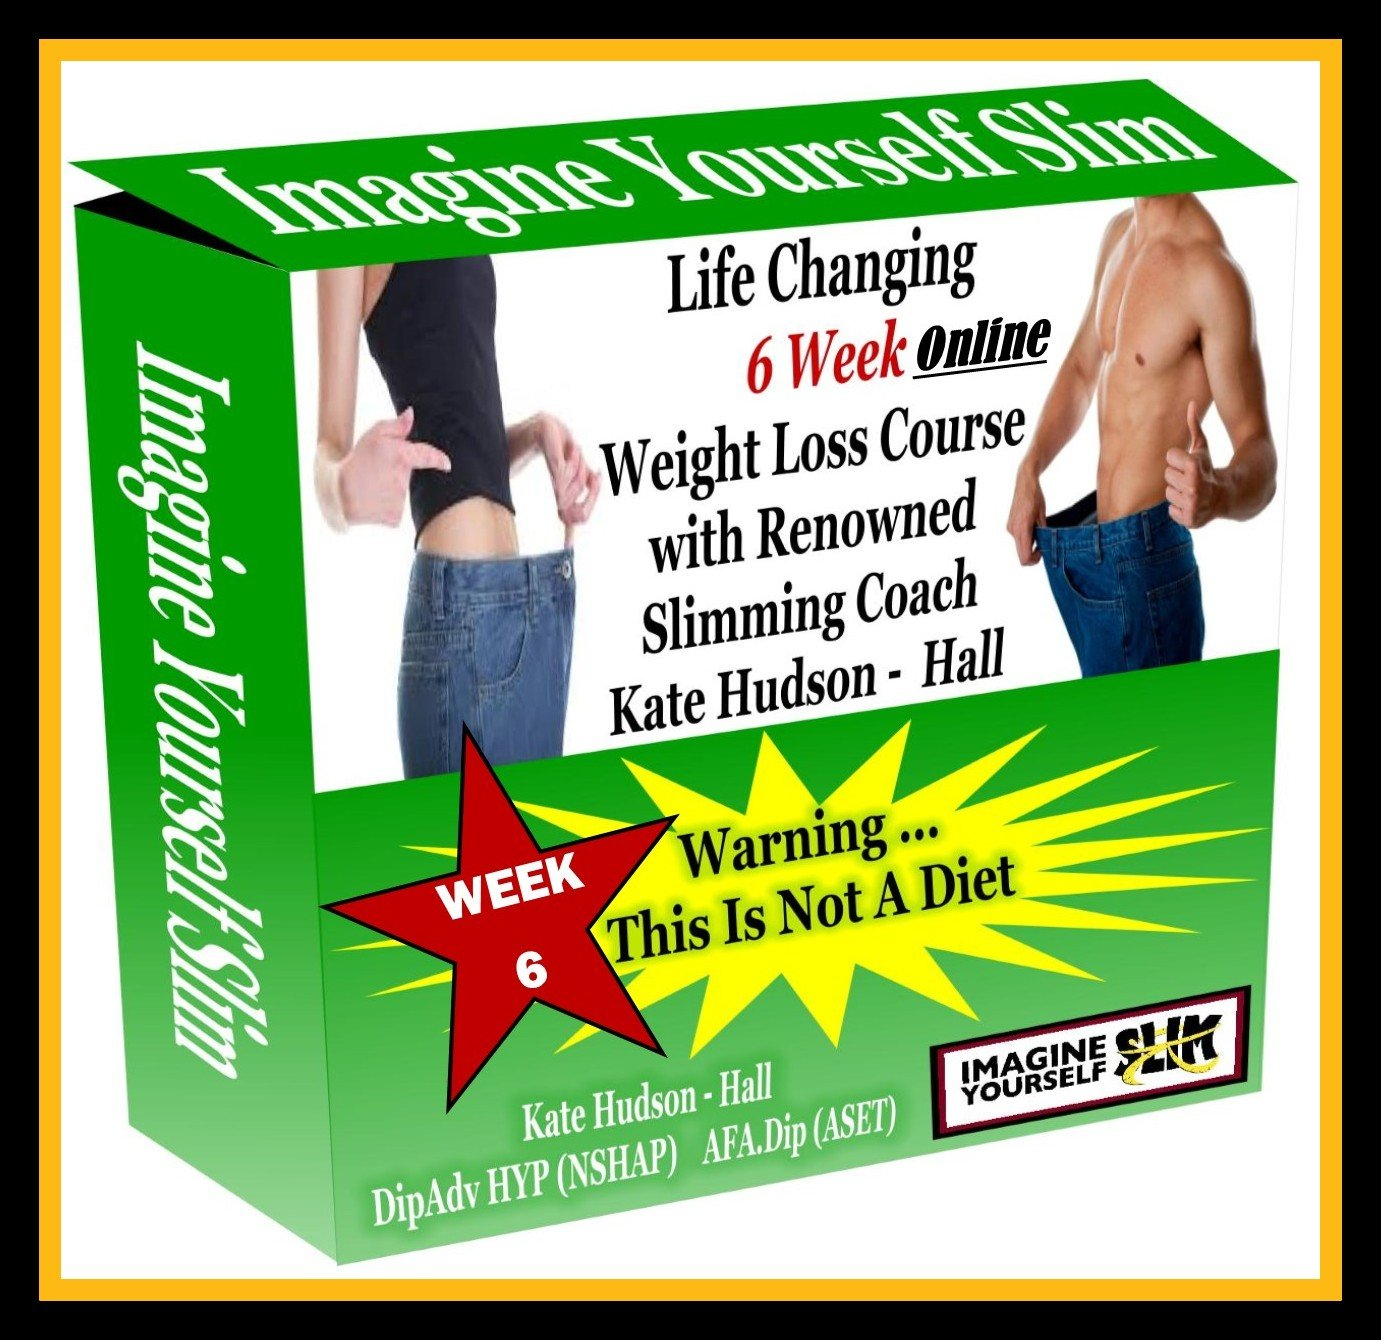 weight loss course week 6